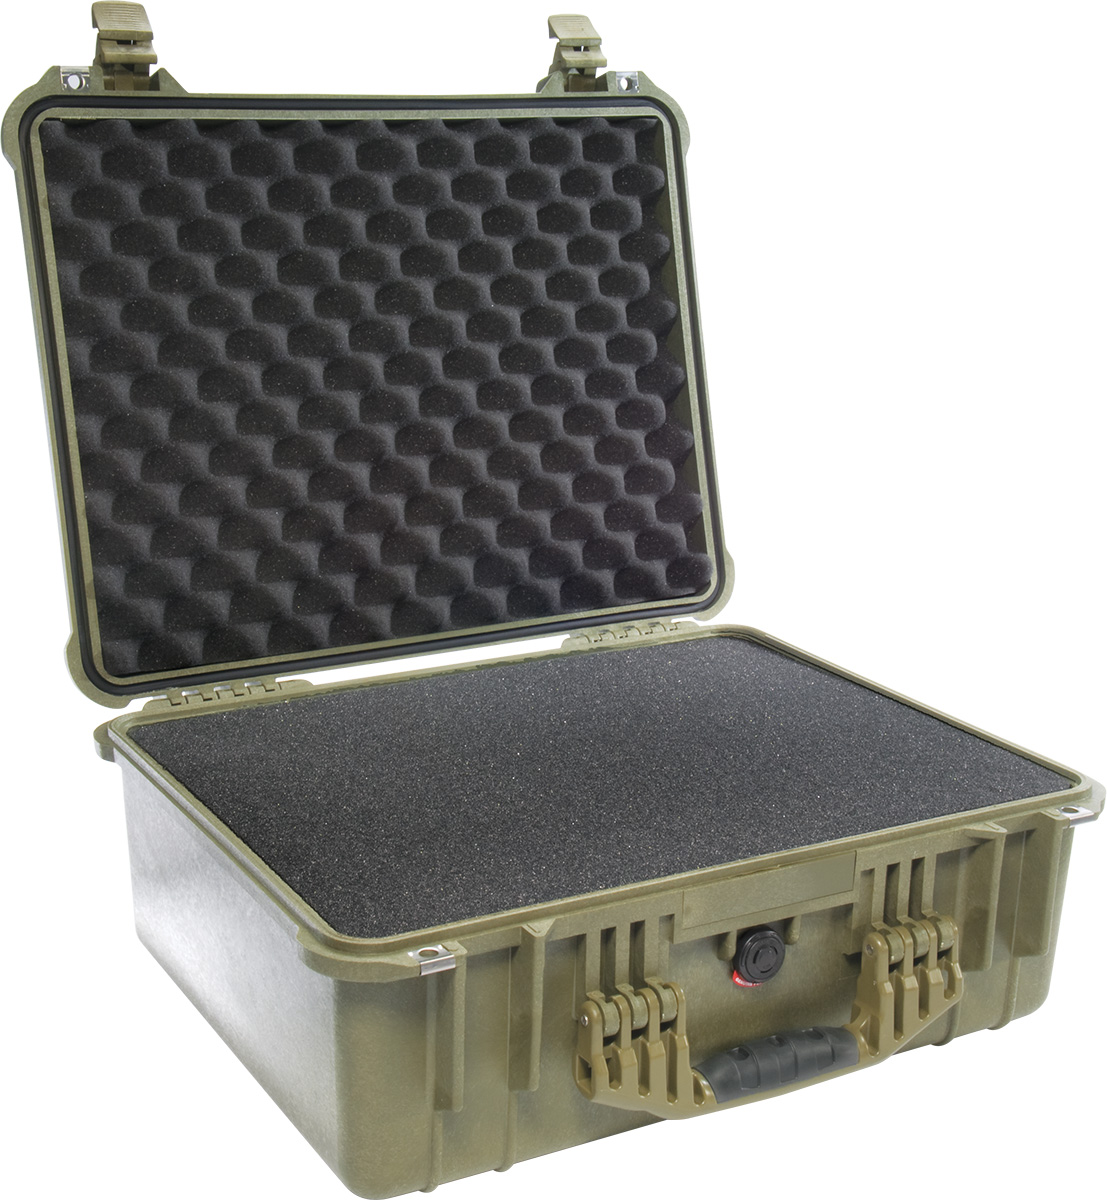 pelican peli products 1550 hard shell waterproof tactical case